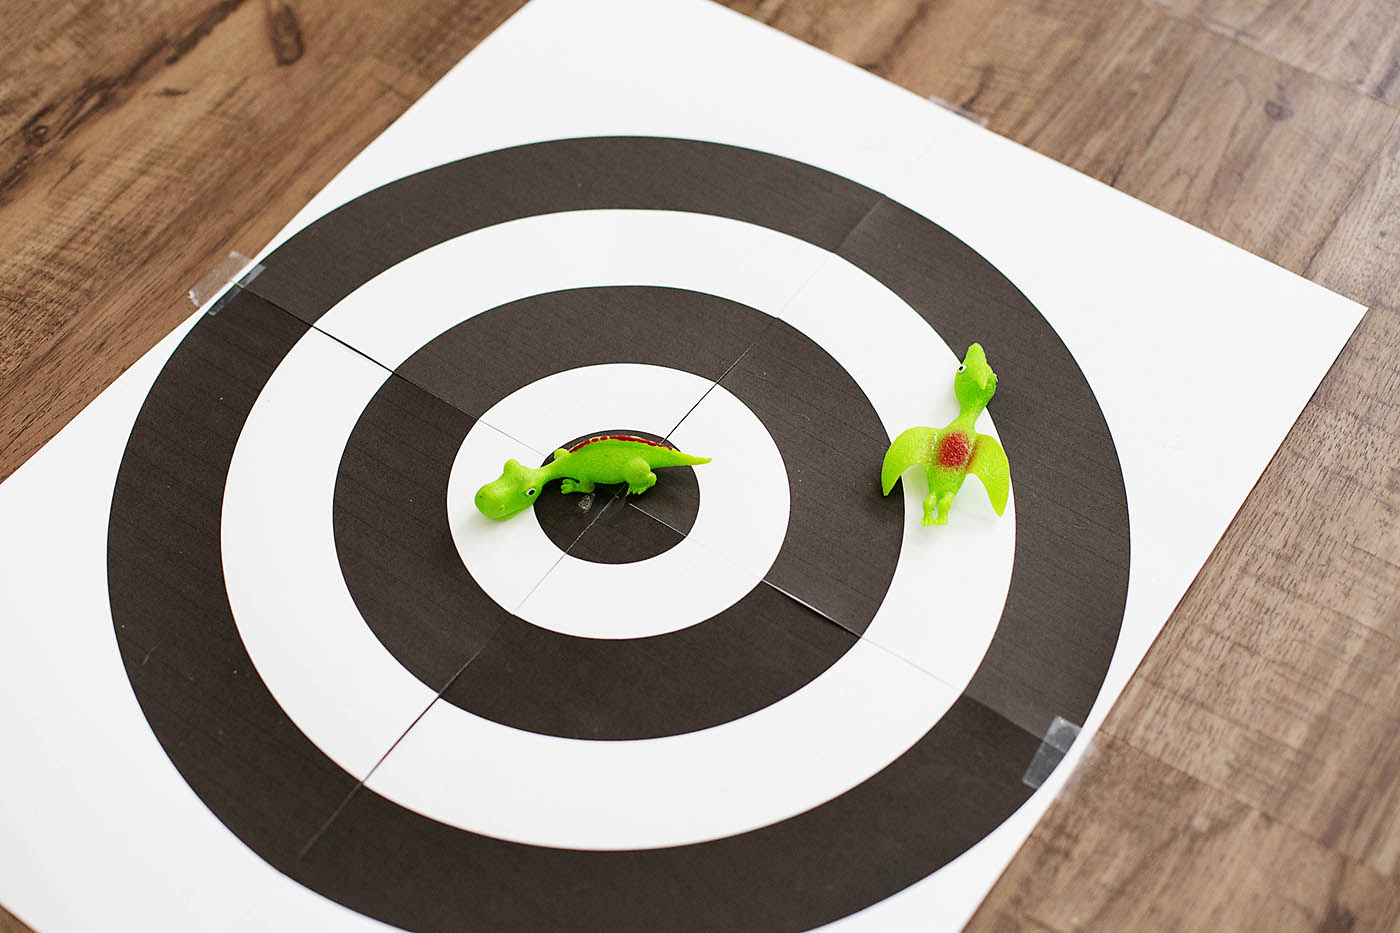 aftb-easy-toy-target-game-3